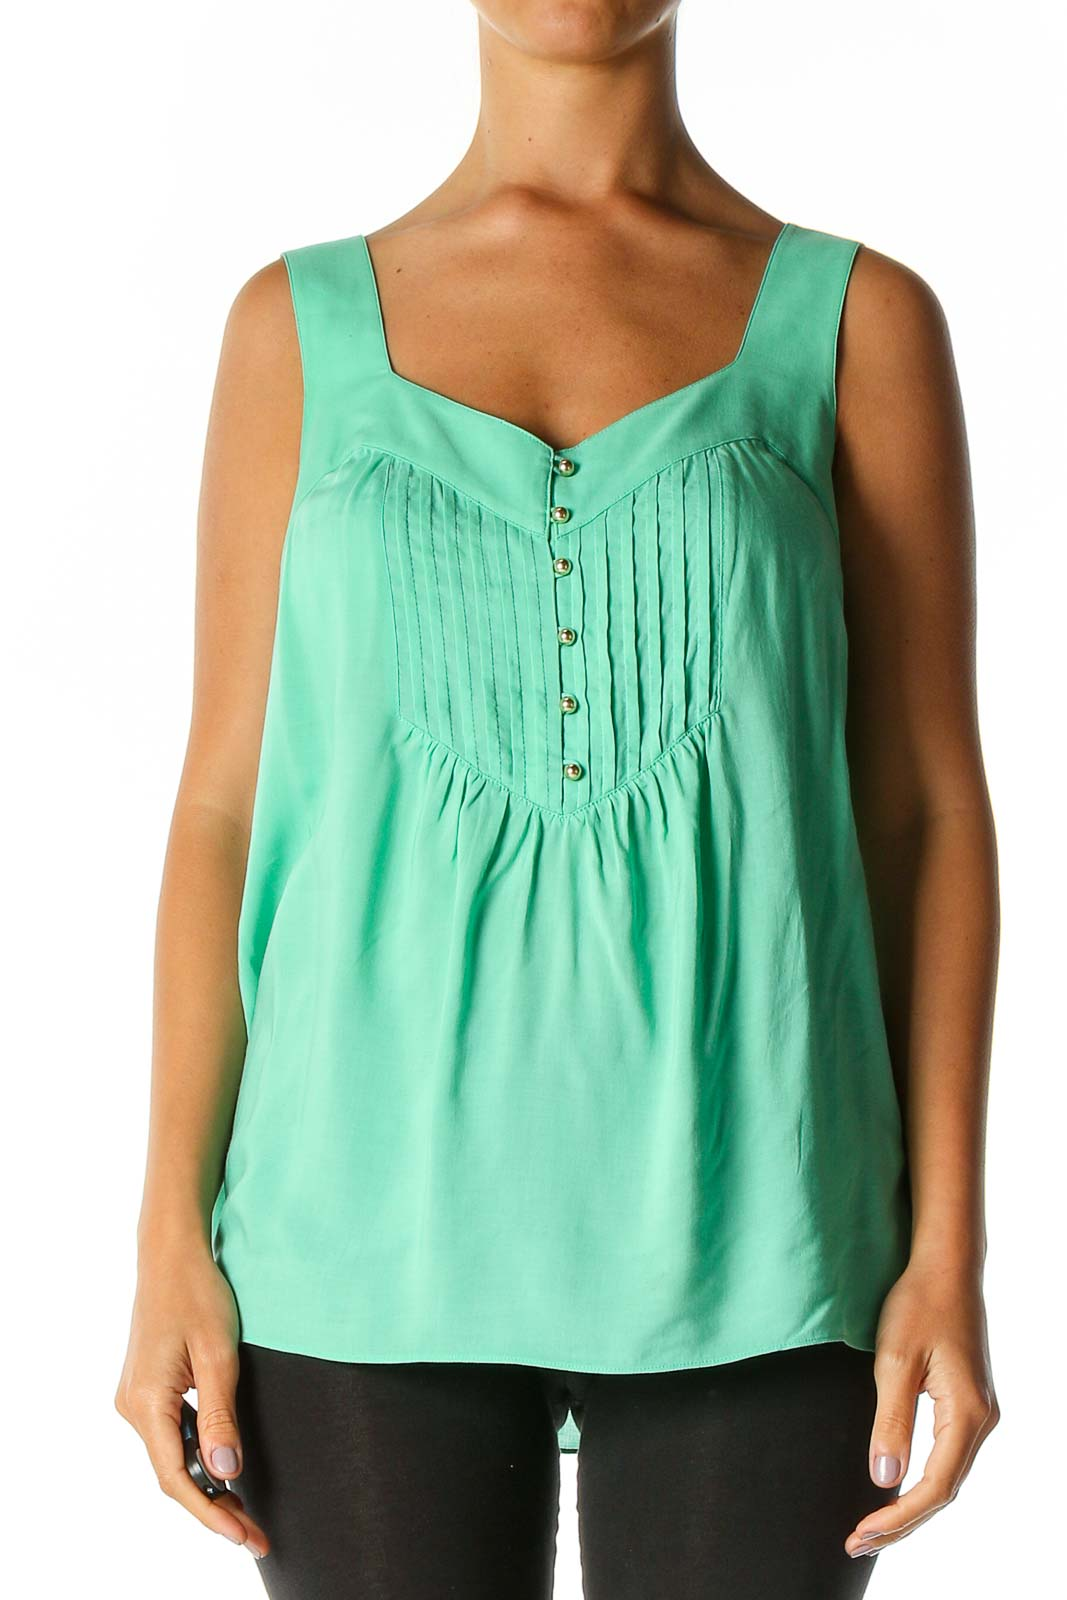 Green Solid Retro Tank Top Front